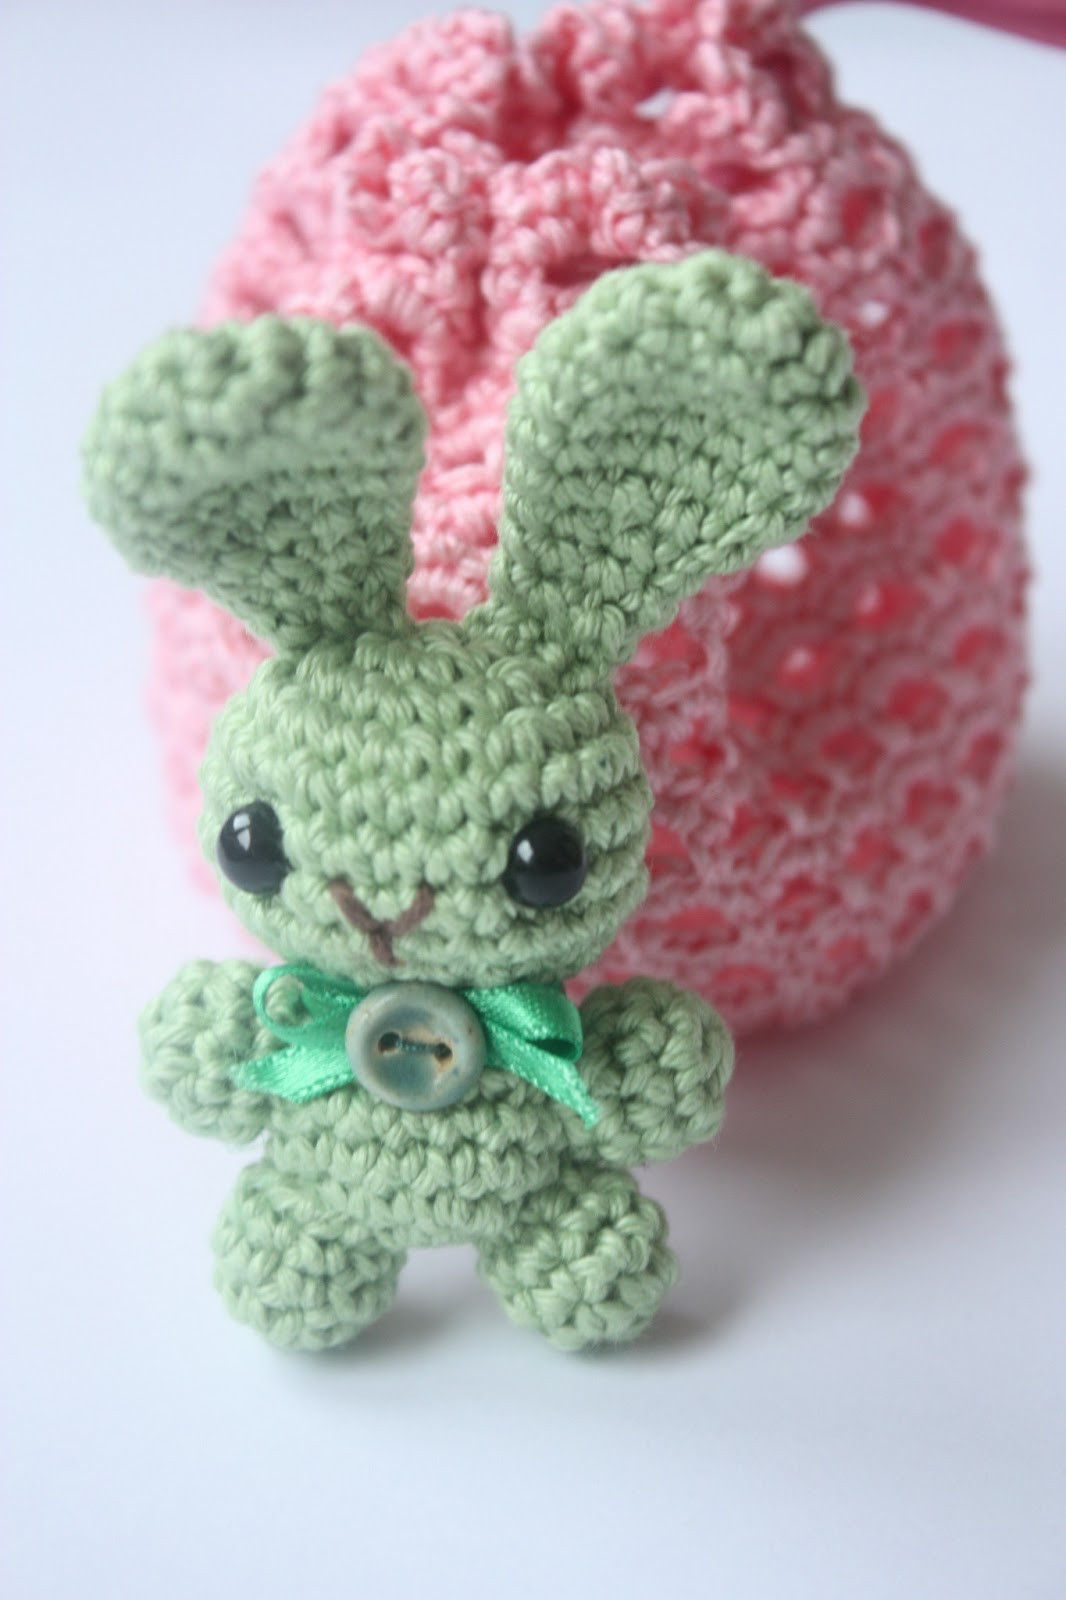 Crochet Bunny Pattern Free Awesome Happyamigurumi Working On Bunny Brooch Pattern Of Charming 50 Pictures Crochet Bunny Pattern Free